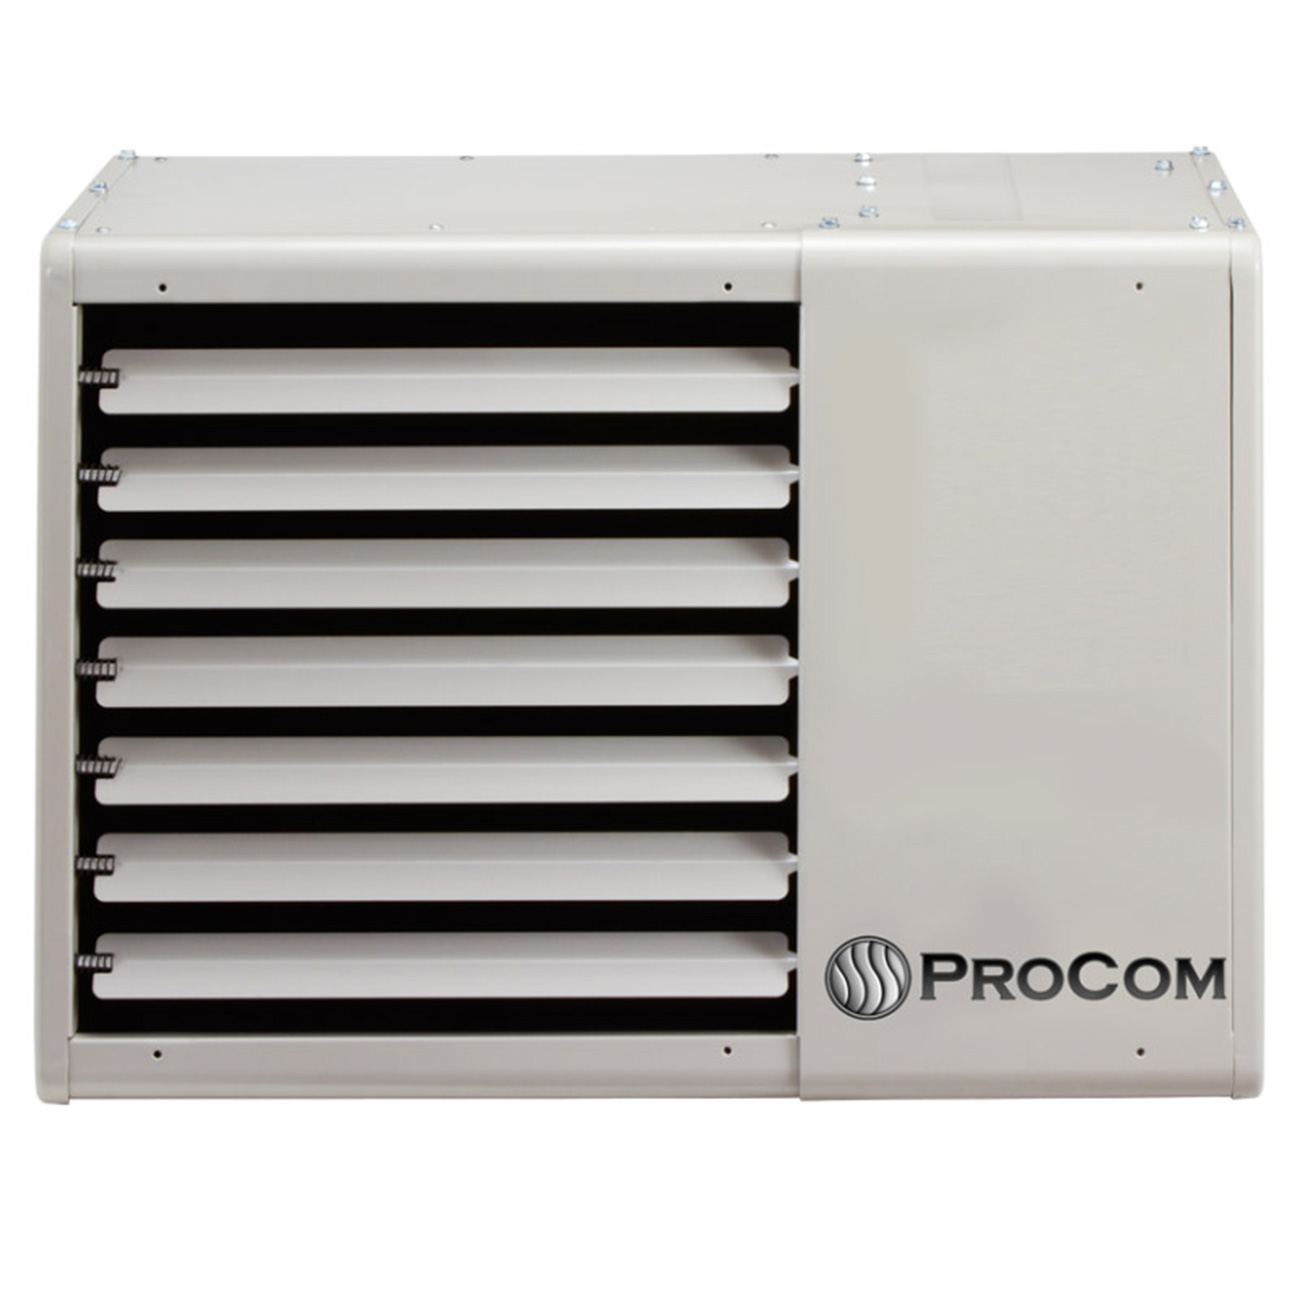 Procom Vented Garage Heater 75 000 Btu T Stat